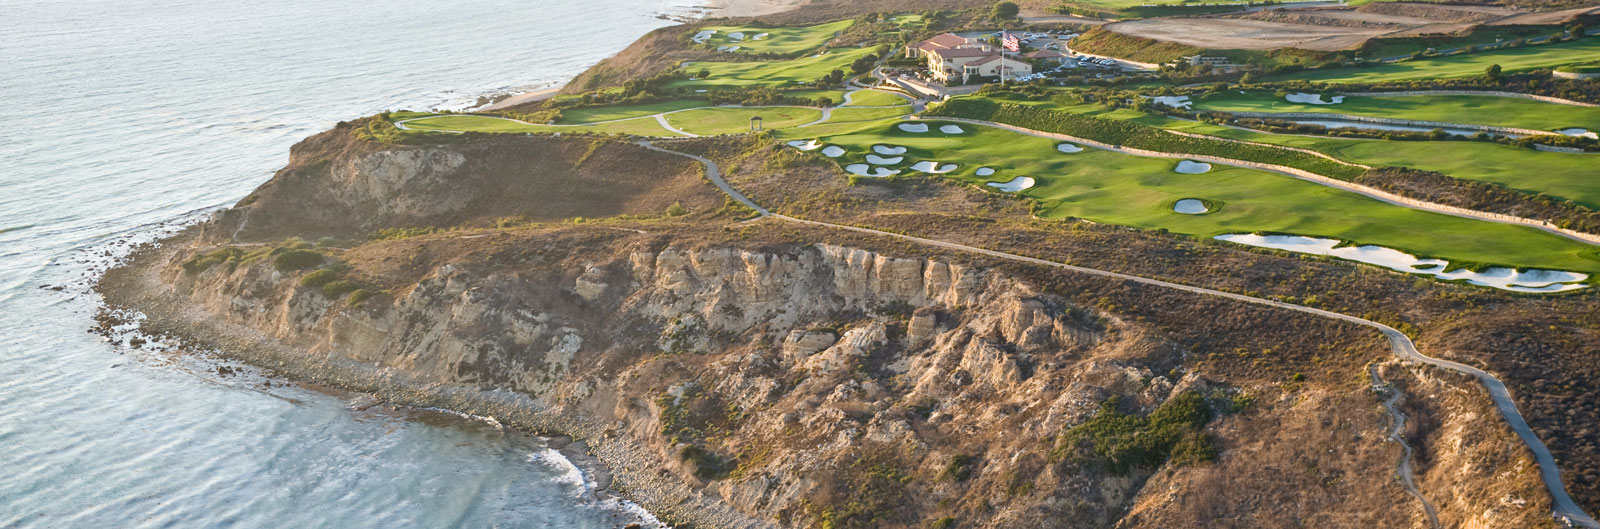 A rocky shoreline and, above, a manicured golf course and club area.